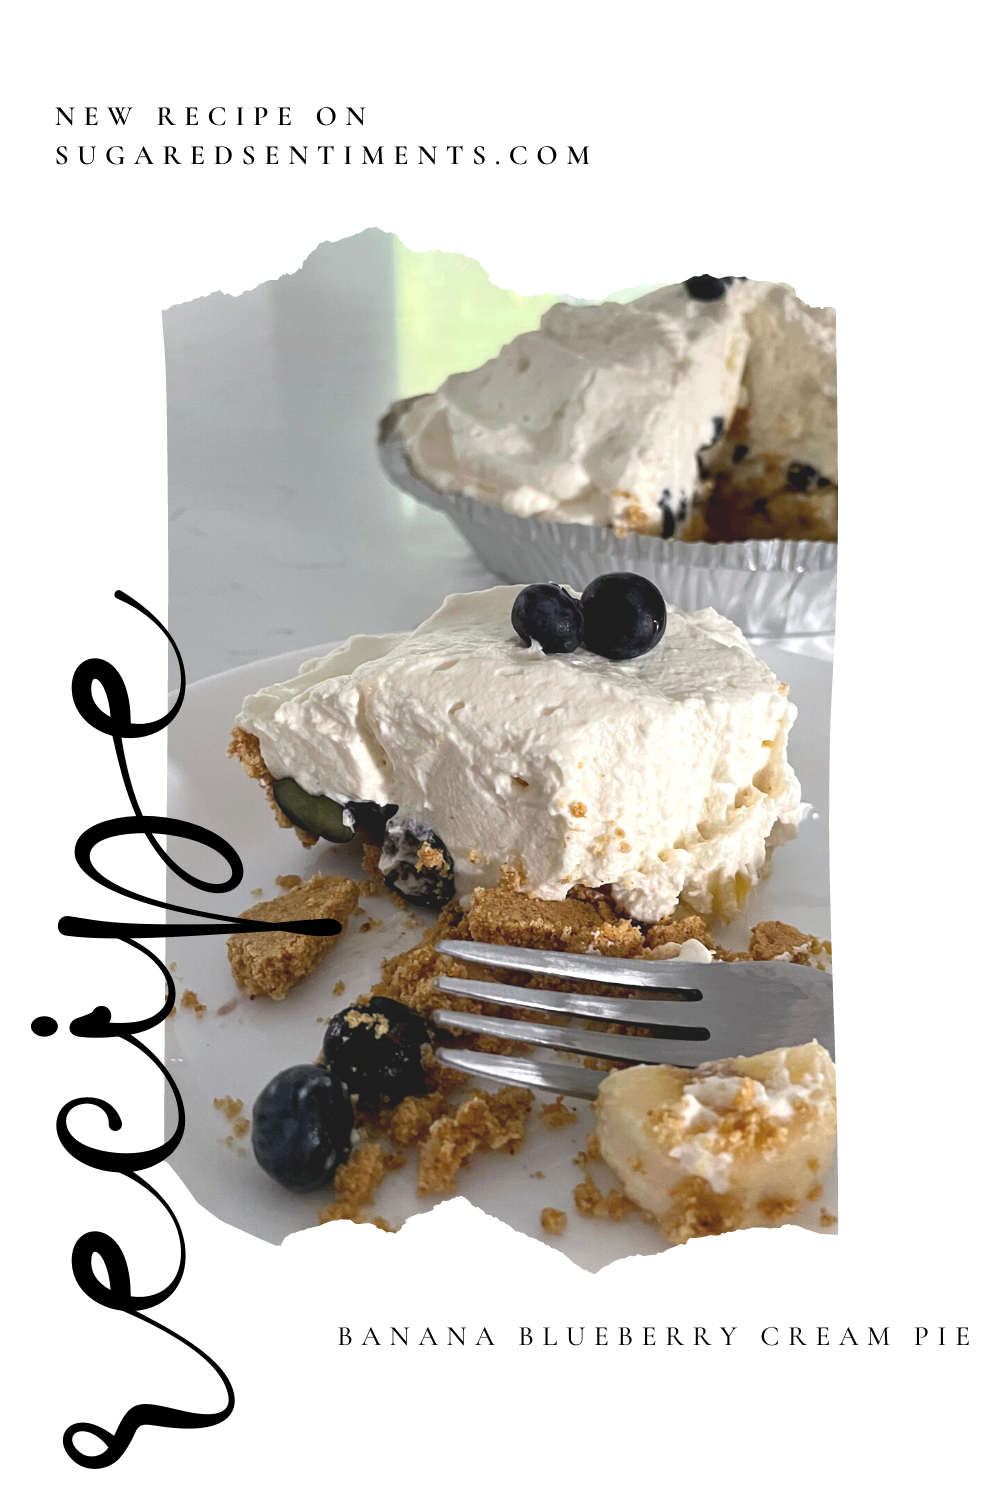 An easy no bake dessert with hints of summer blueberries and bananas. Creamy and light for even the biggest pie hater!